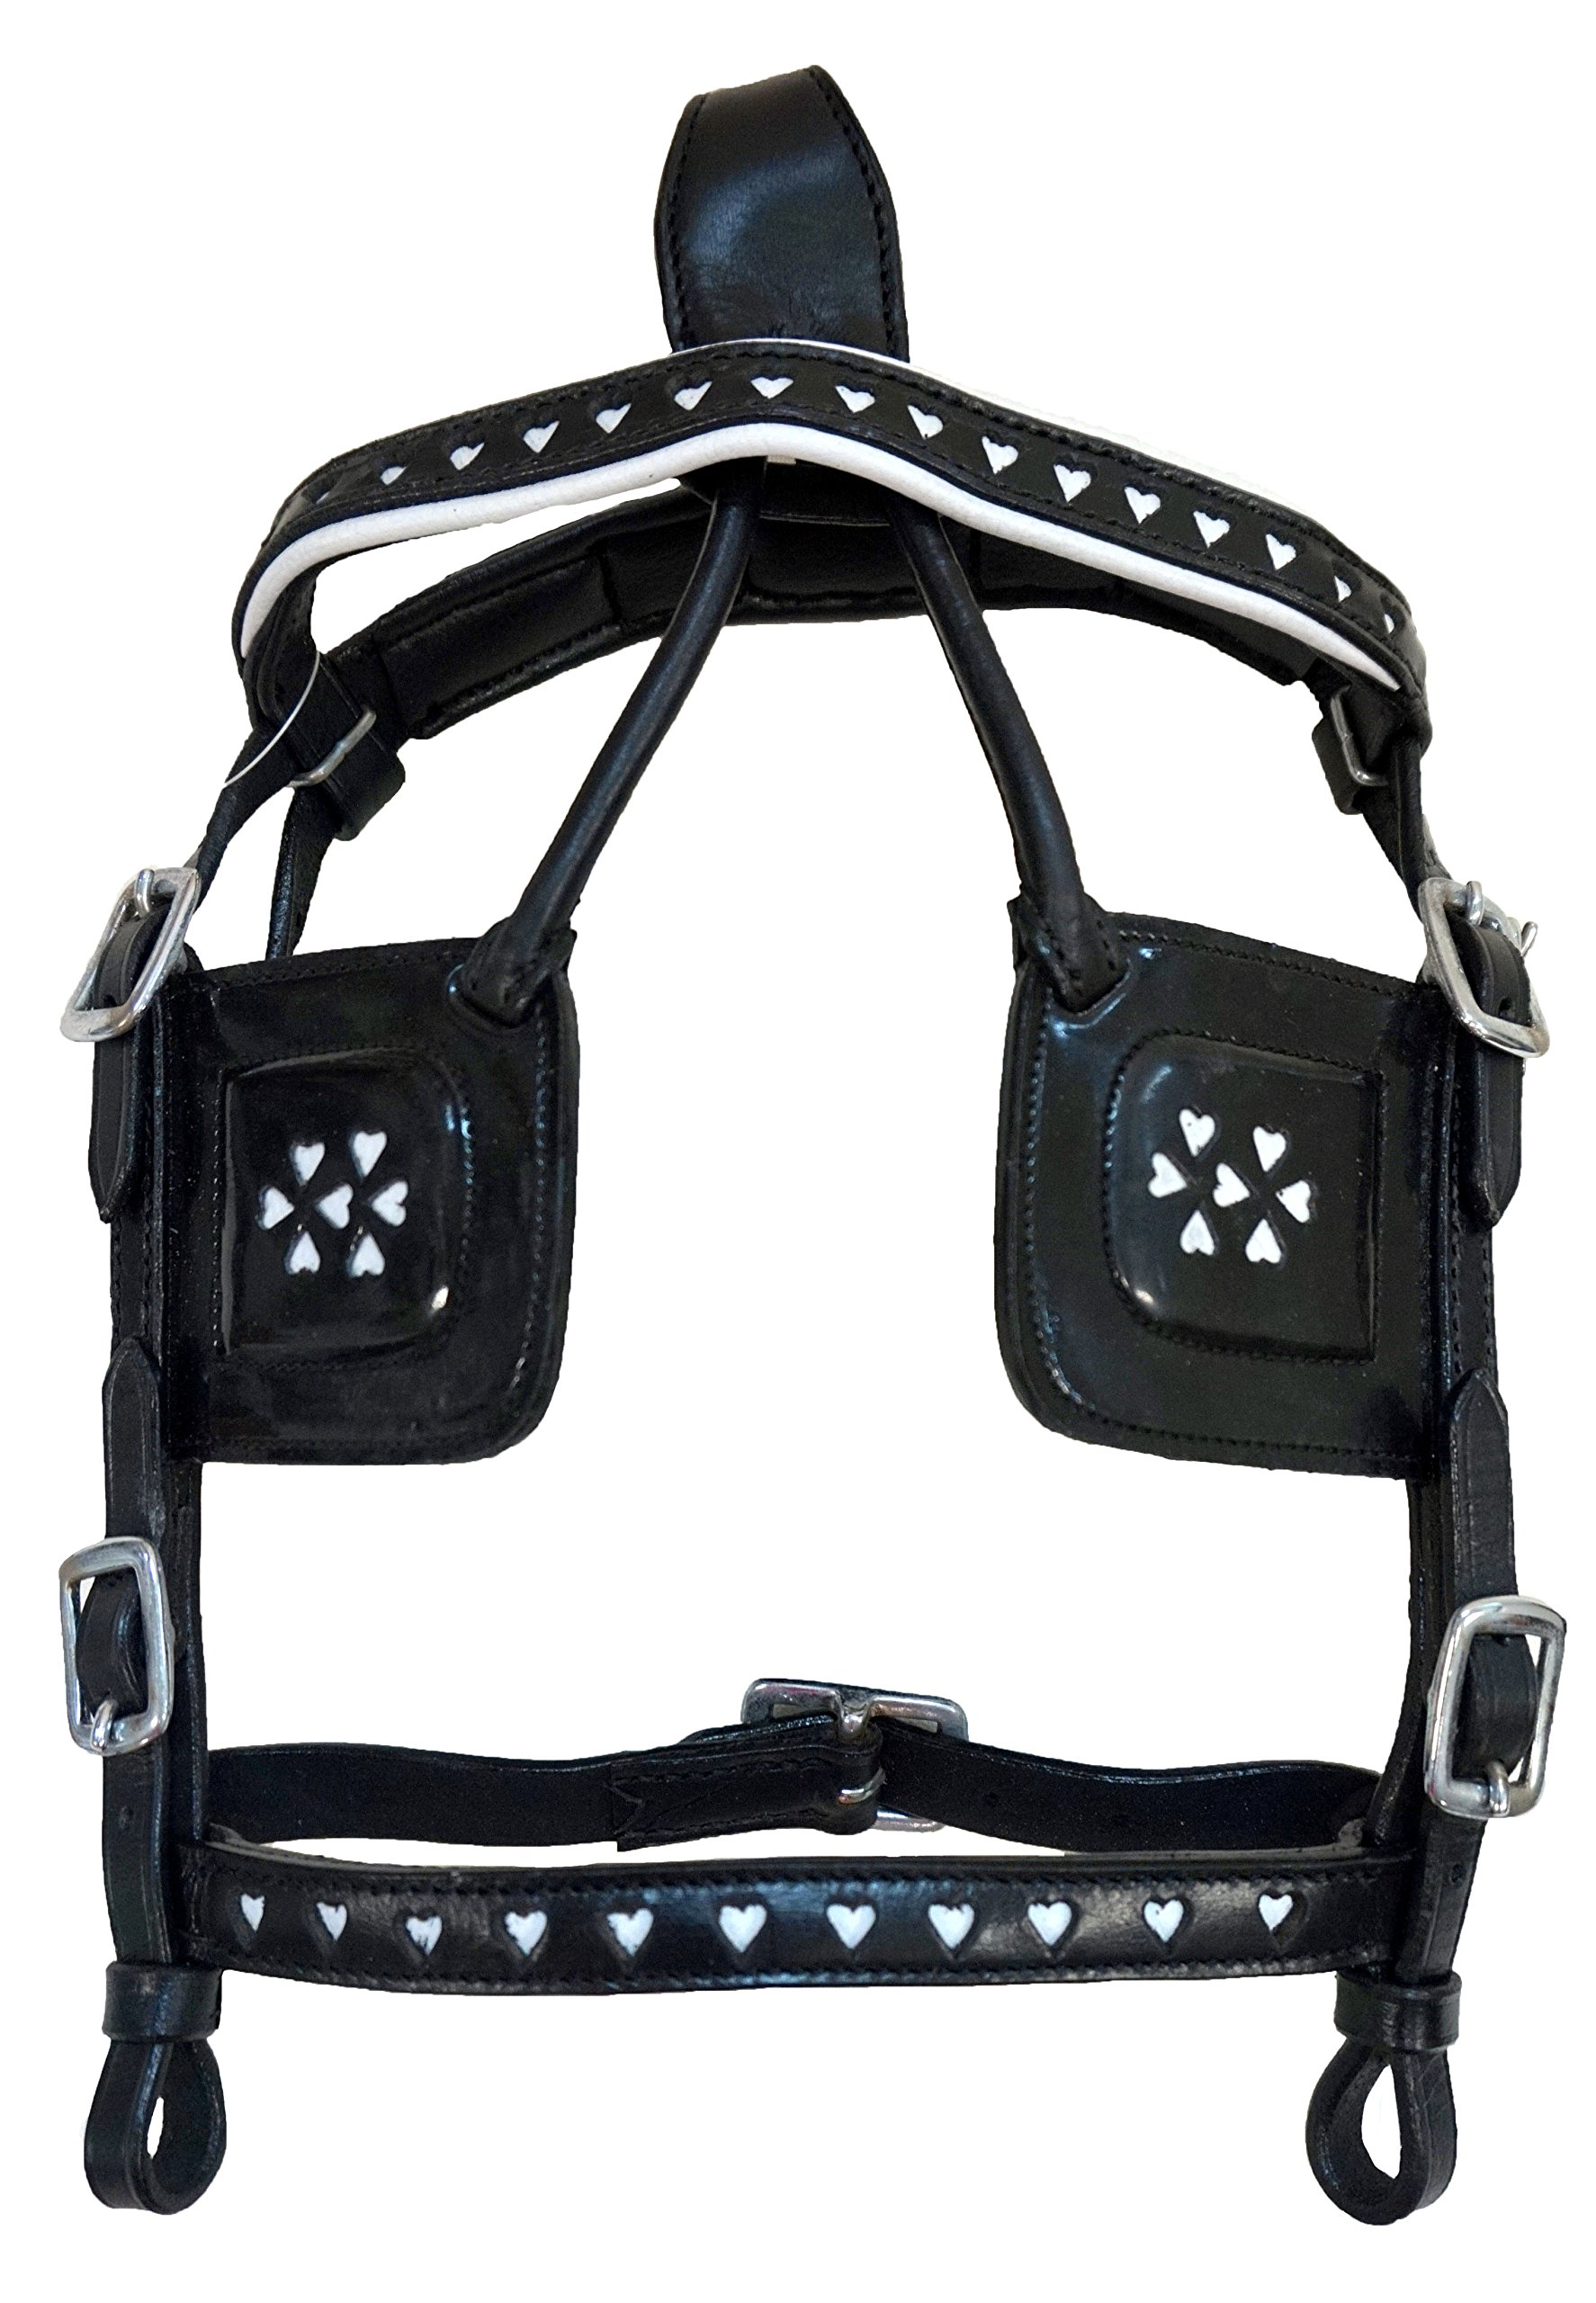 Black Leather Mini Pony Driving Harness with White Hearts